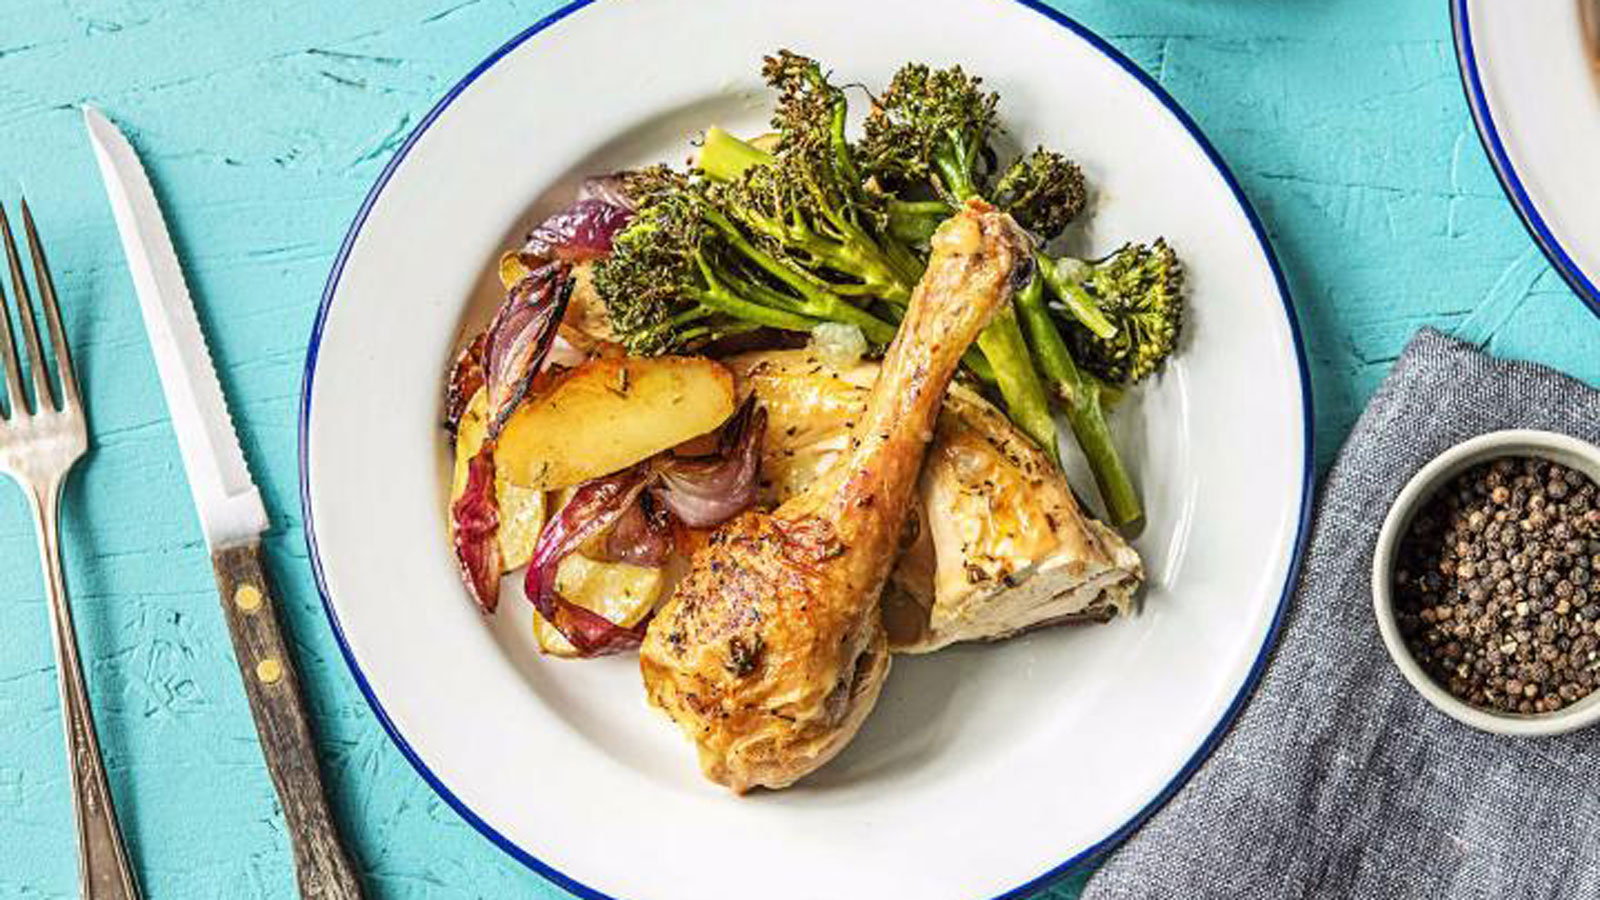 Chicken-Under-a-Brick-with-Baby-Broccoli,-Lemon,-and-Fingerling-Potatoes